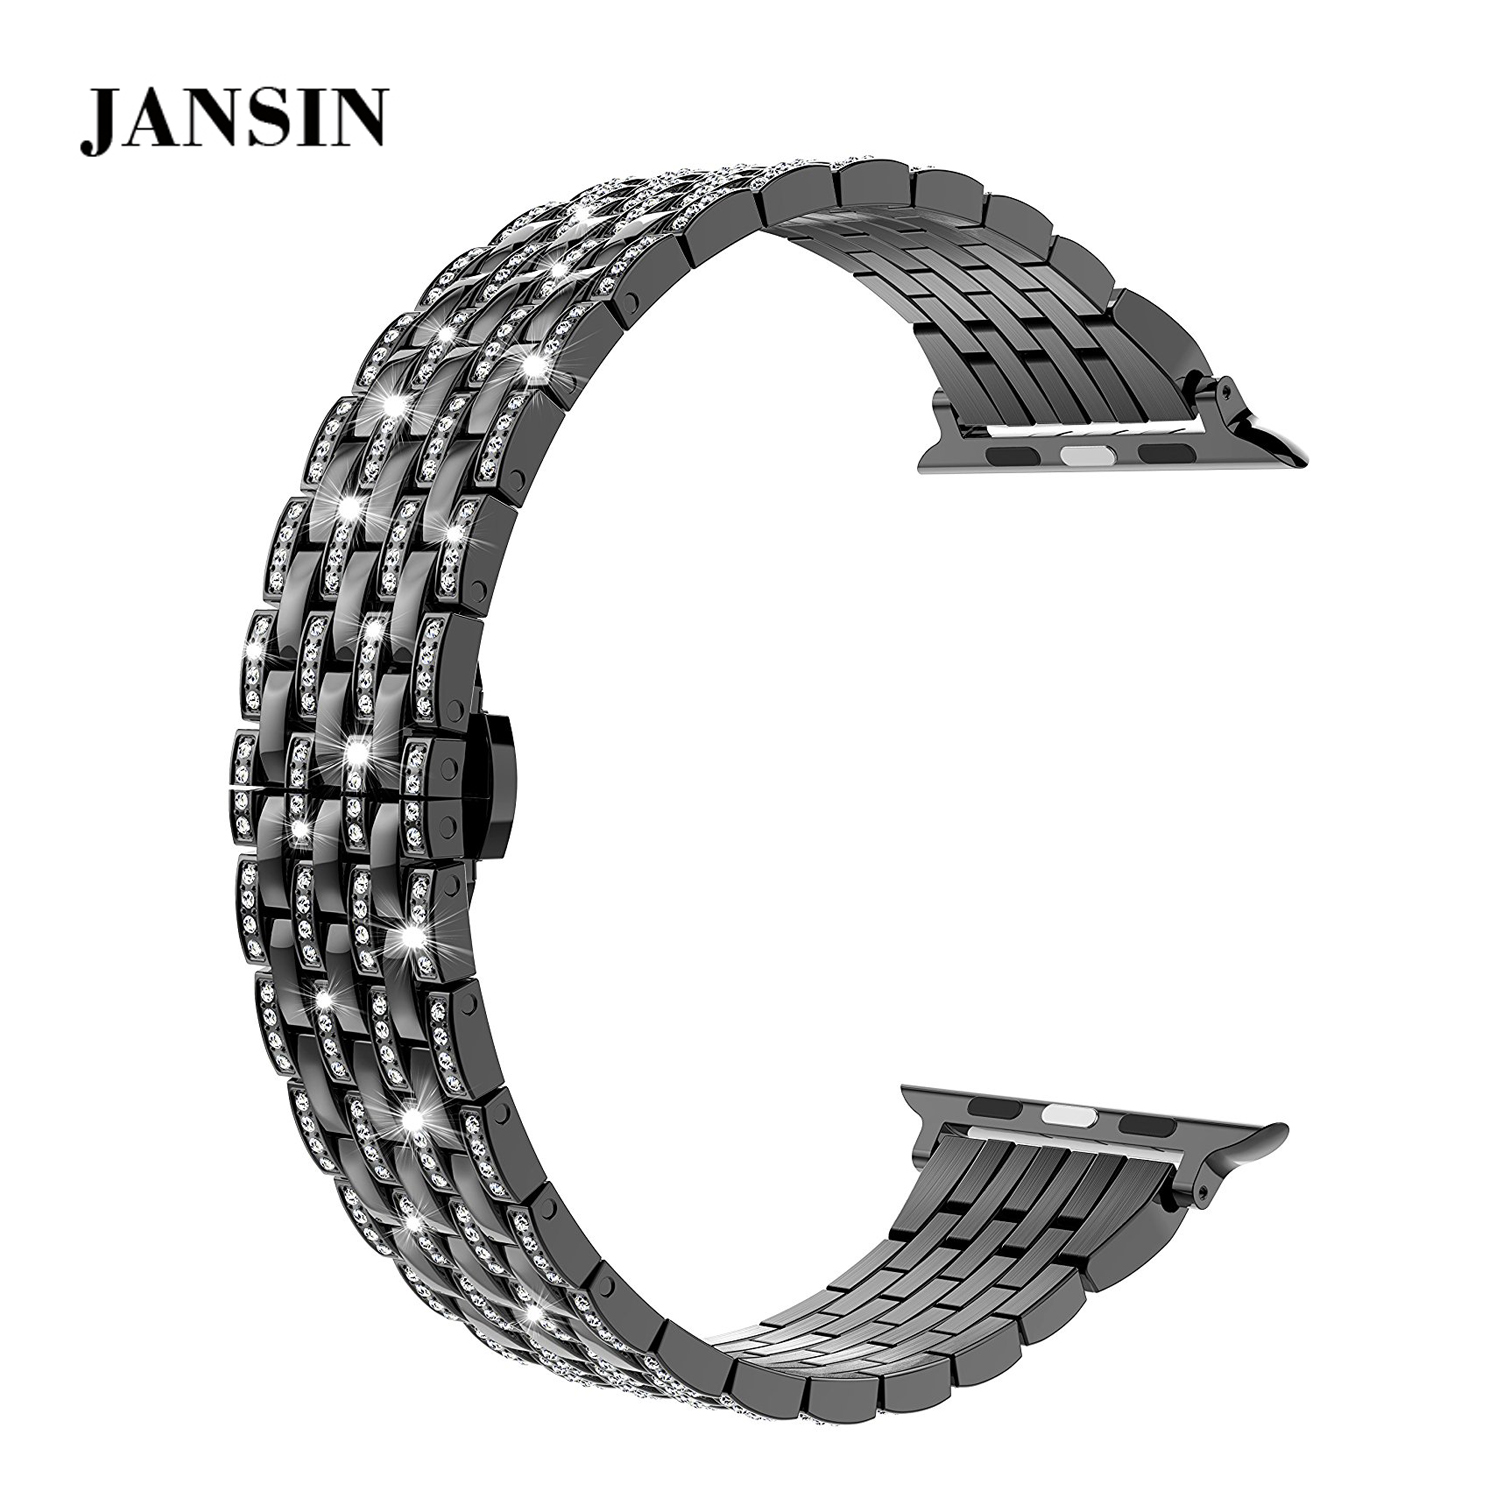 For Apple Watch Band series 3 2 1,JANSIN Luxury Crystal Rhinestone Stainless Steel Strap Watch Band for Apple Watch 38mm 42mm luxury ladies watch strap for apple watch series 1 2 3 wrist band hand made by crystal bracelet for apple watch series iwatch